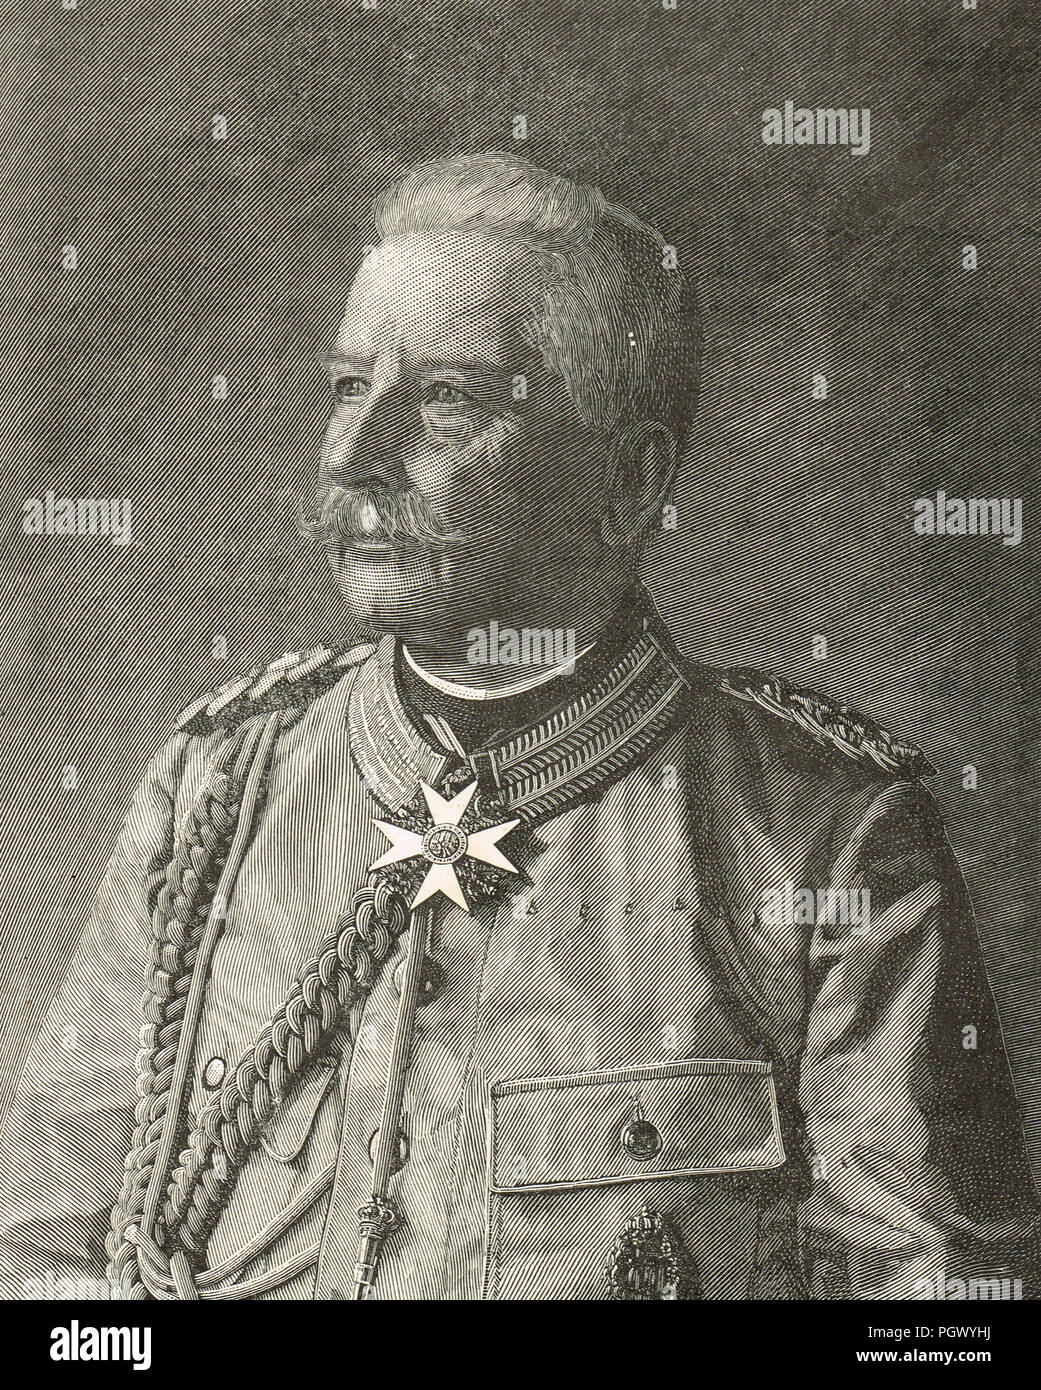 Count Alfred Ludwig Heinrich Karl Graf von Waldersee, Chief of the Imperial German General Staff, circa 1900 - Stock Image